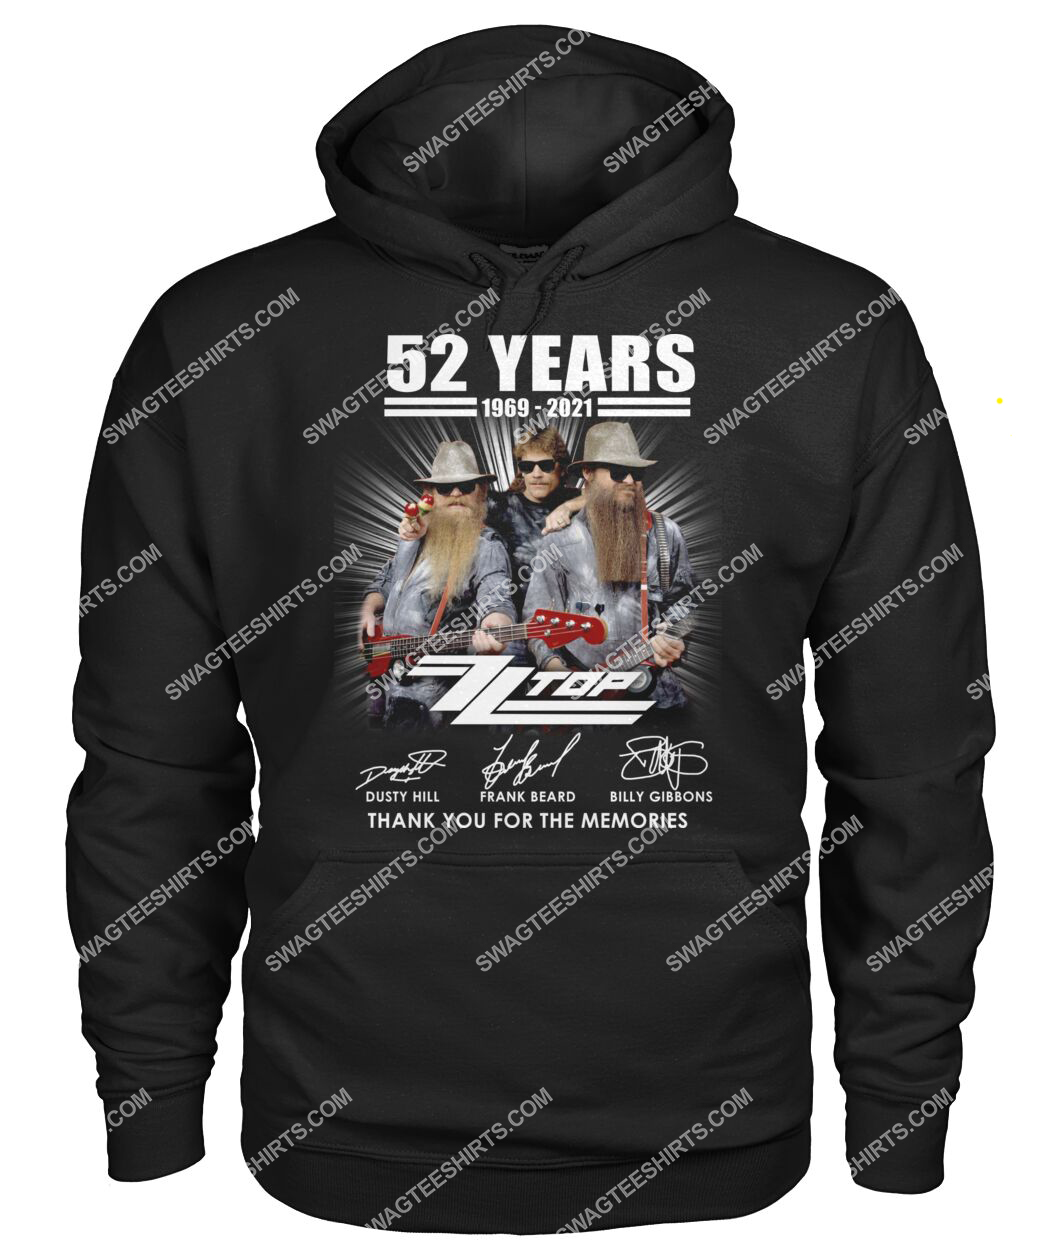 vintage zz top 52 years thank you for memories signature hoodie 1